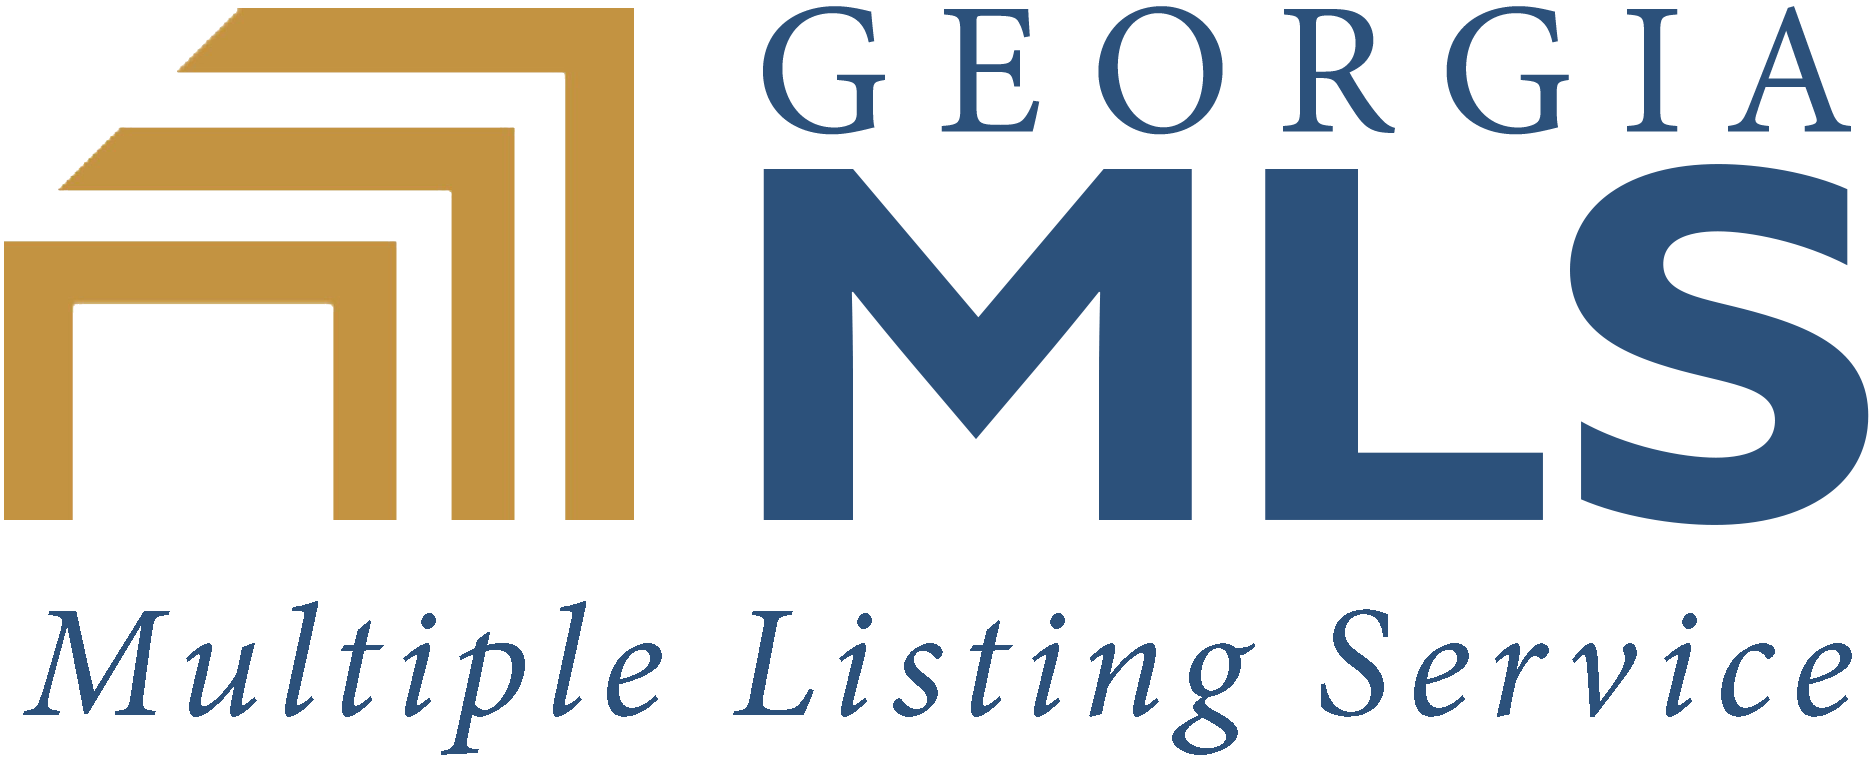 Bion GradyMaximum One Realty Greater Atlanta